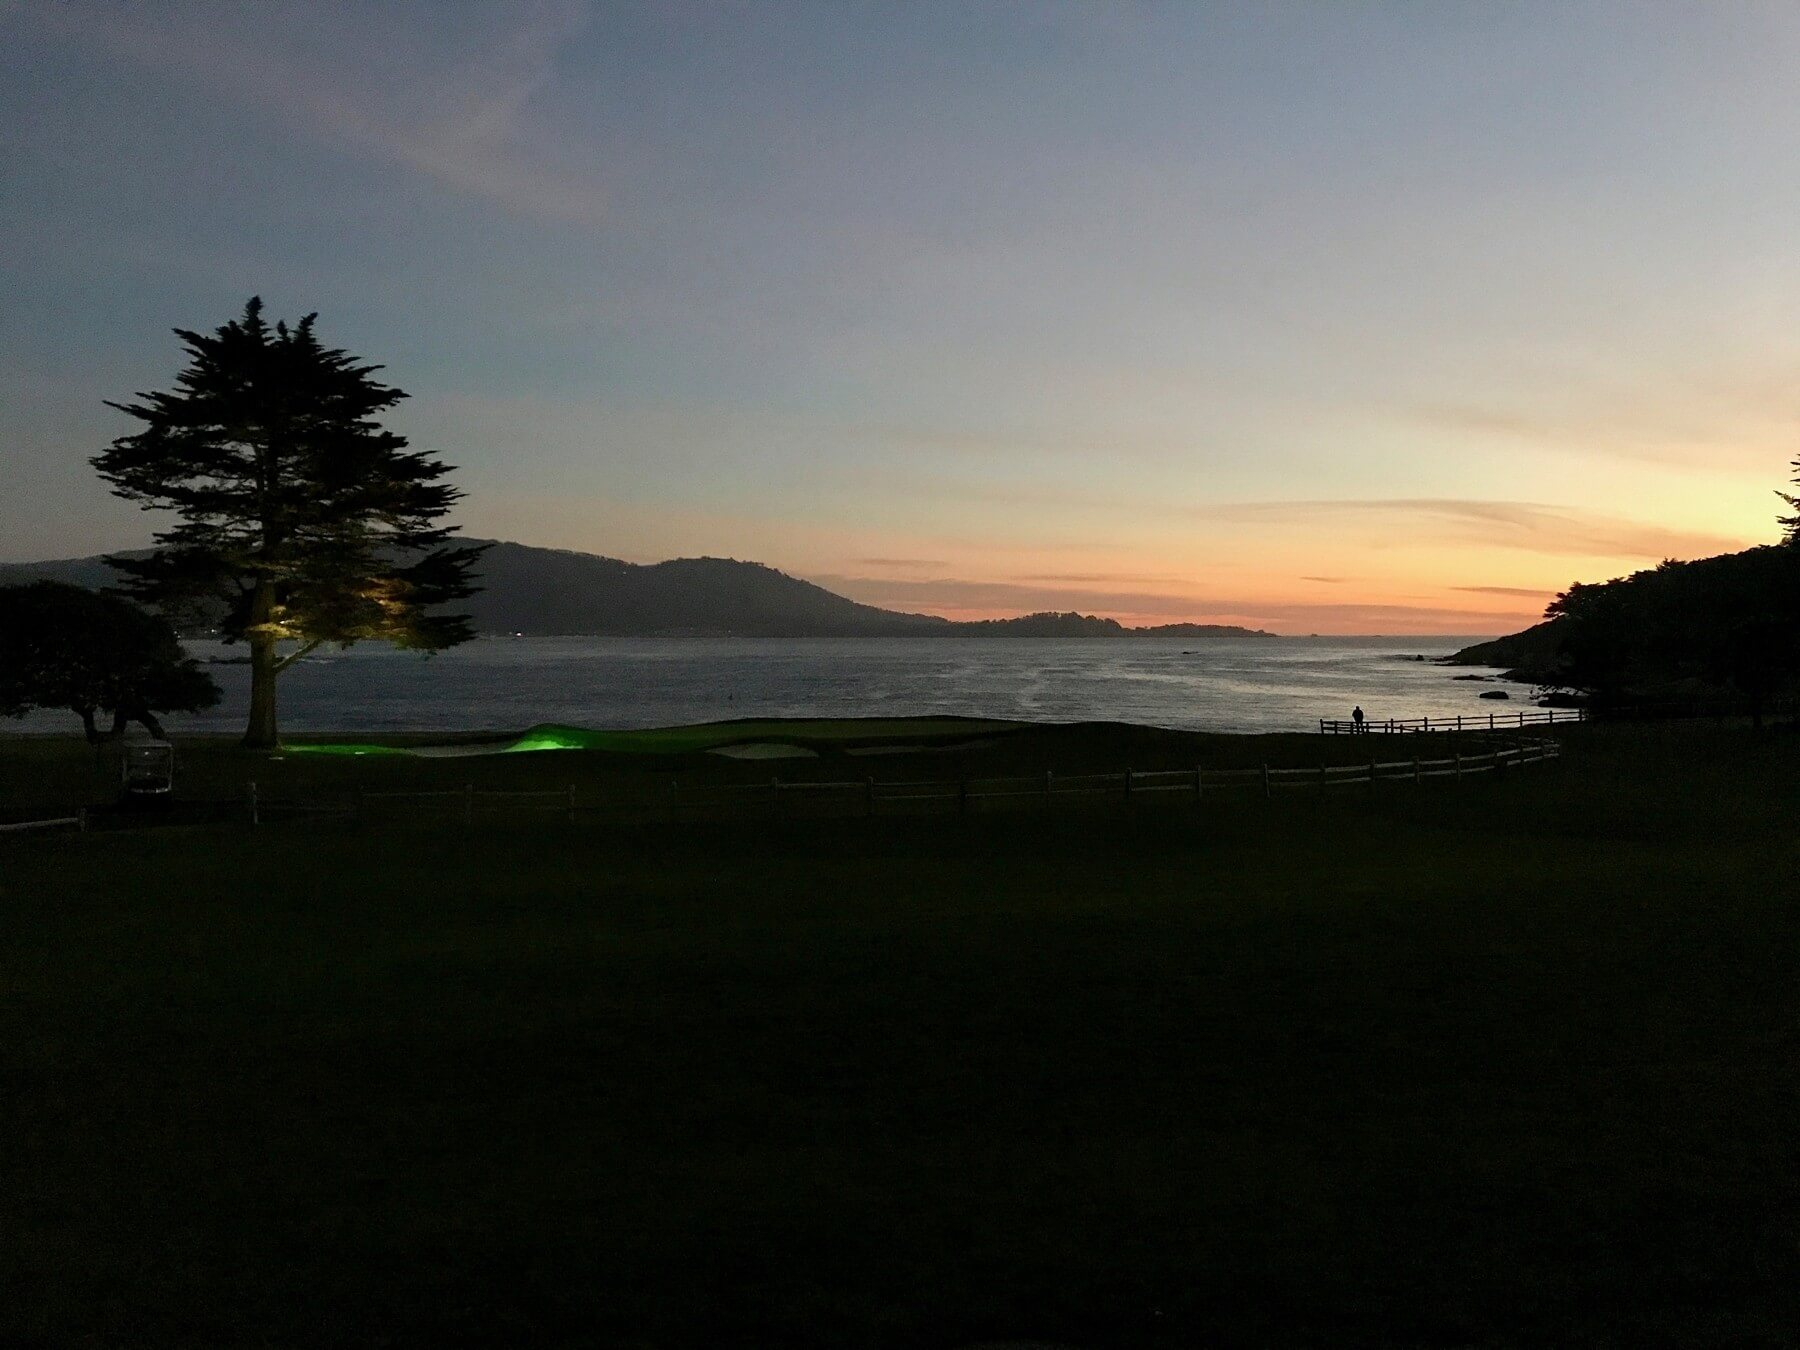 Watching the sunset over the 18th green at Pebble Beach is any golf enthusiast's paradise.